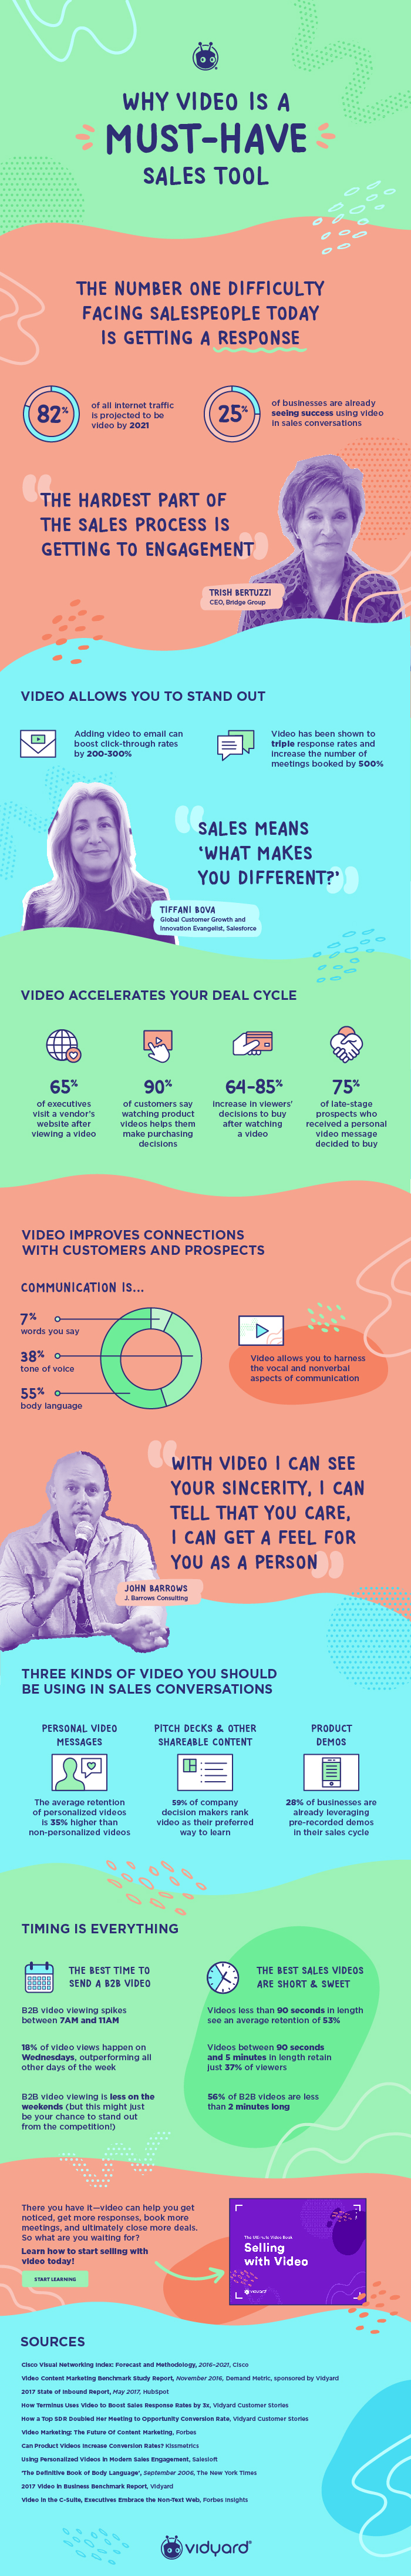 Why Video is a Must-Have Sales Tool [Infographic] 1